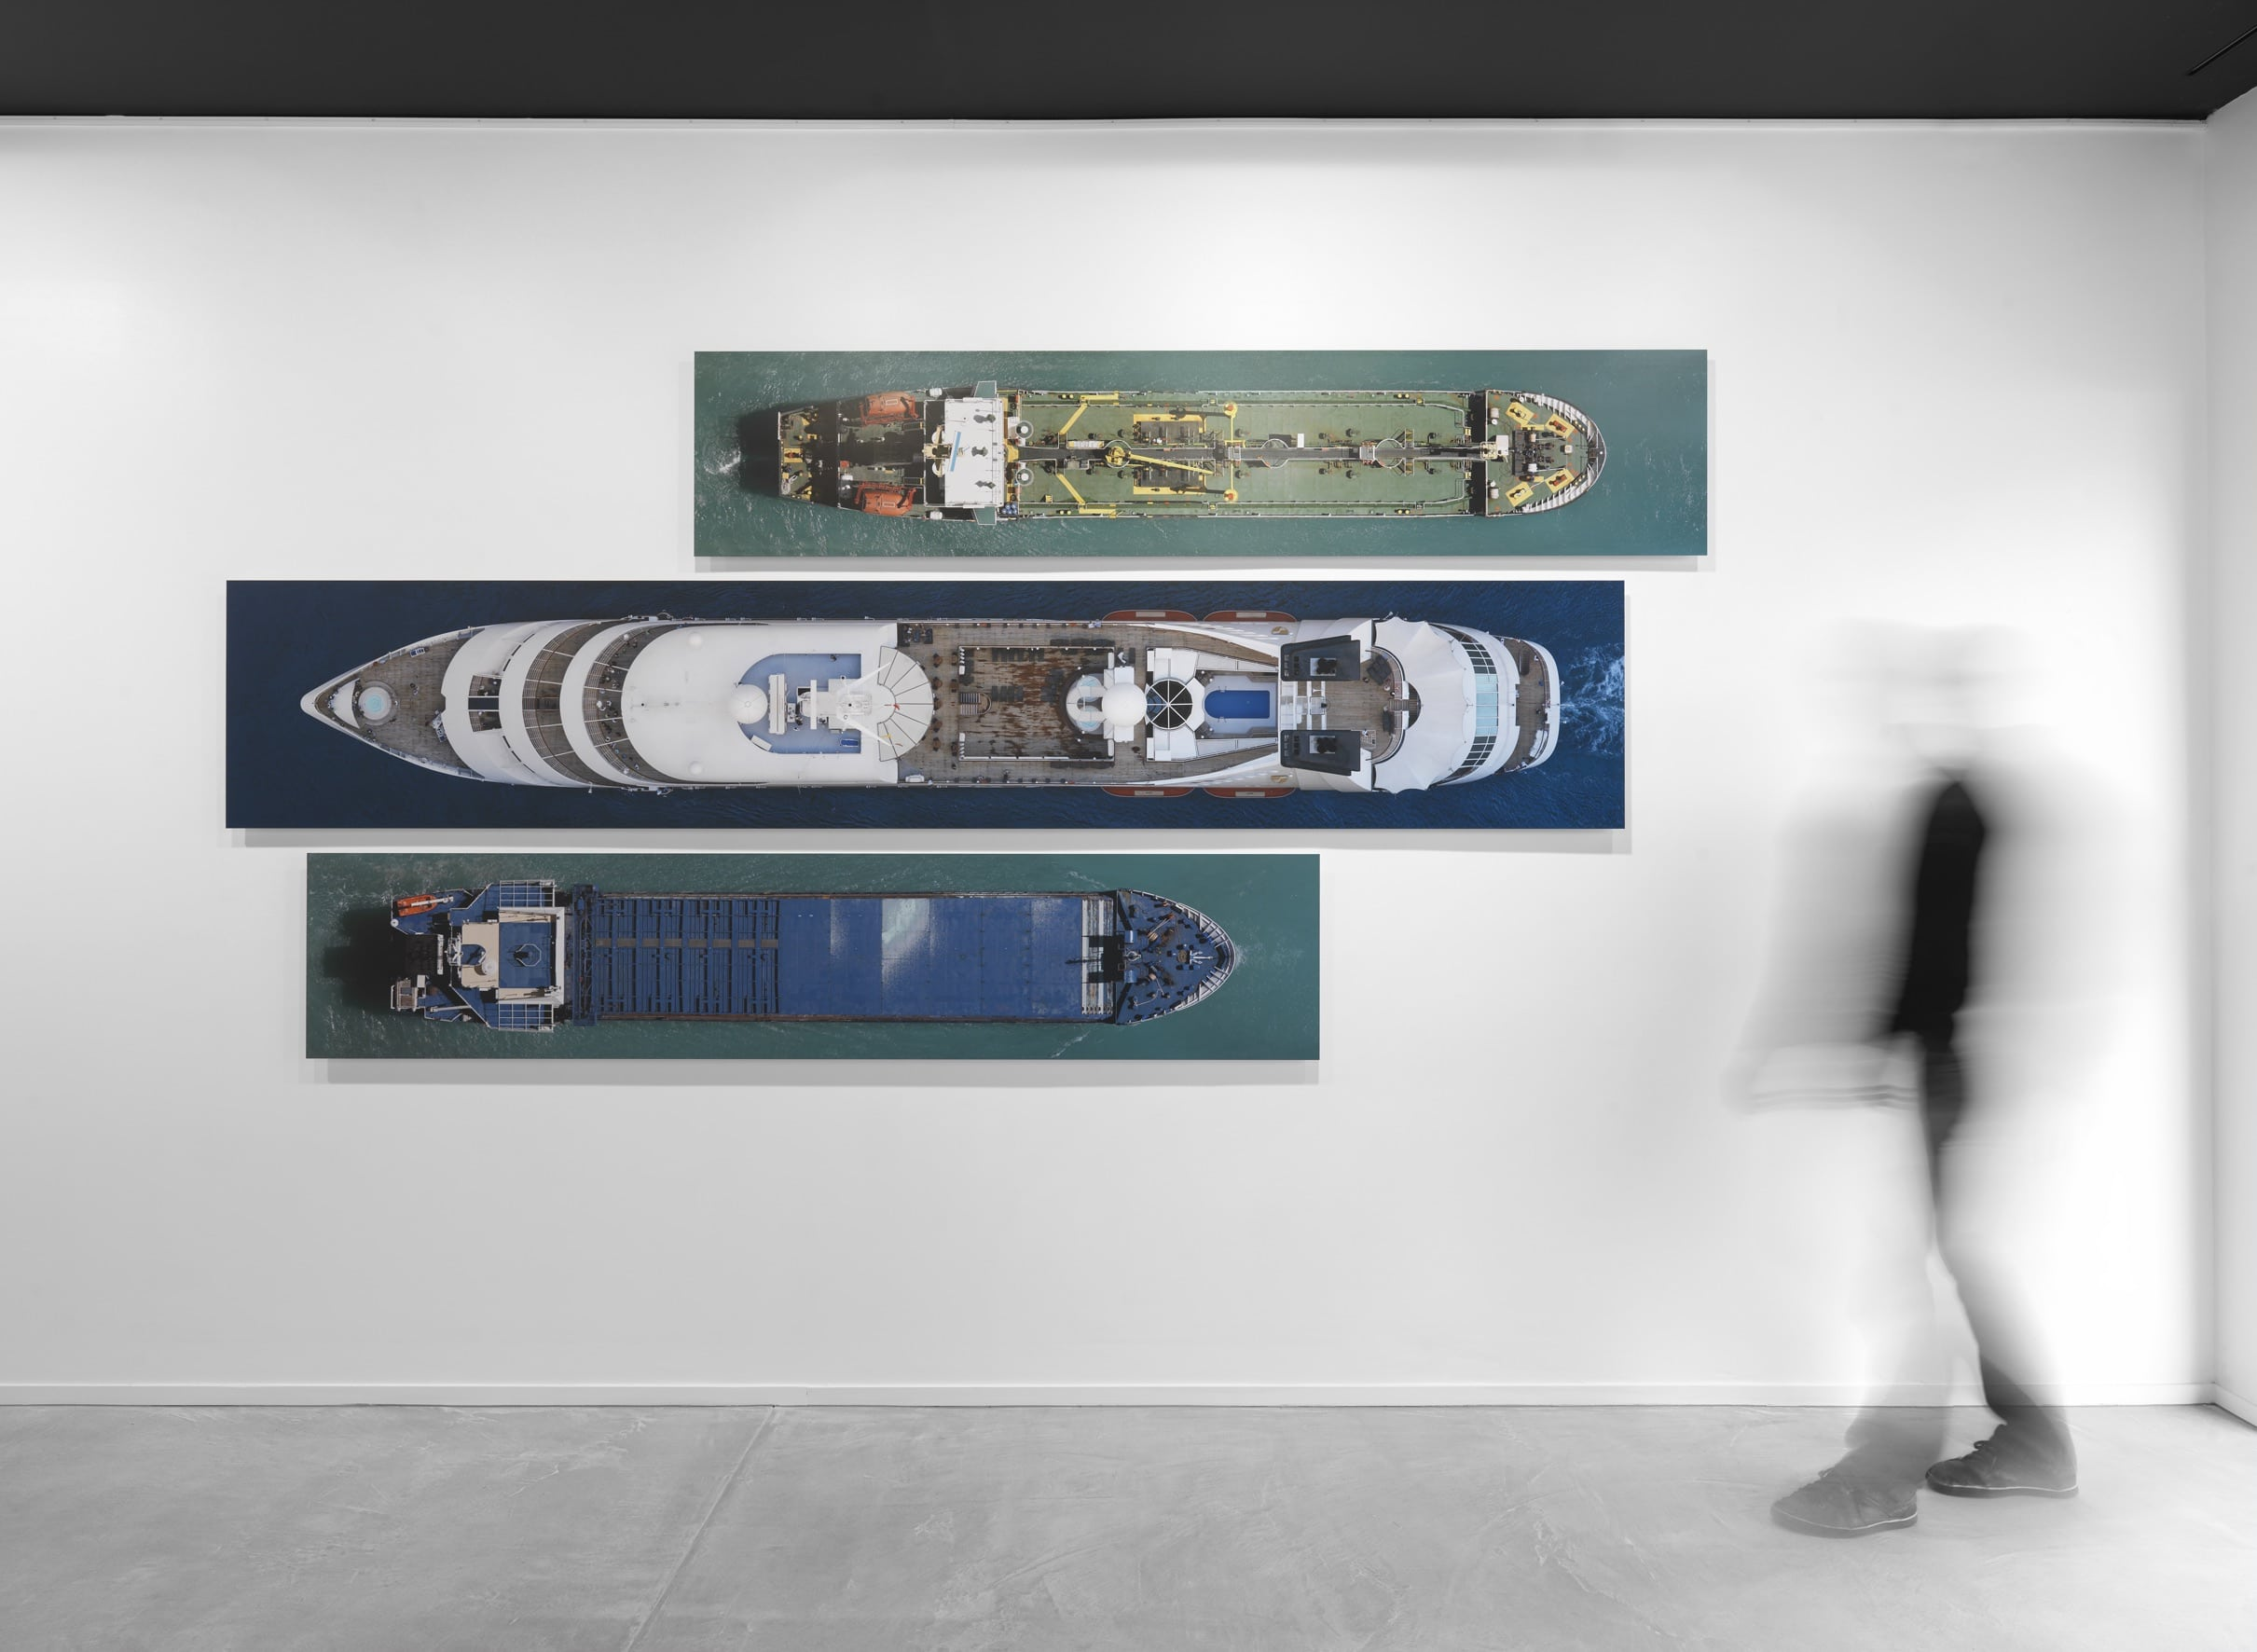 Laurent-Maes-Shipshape-Installation-View